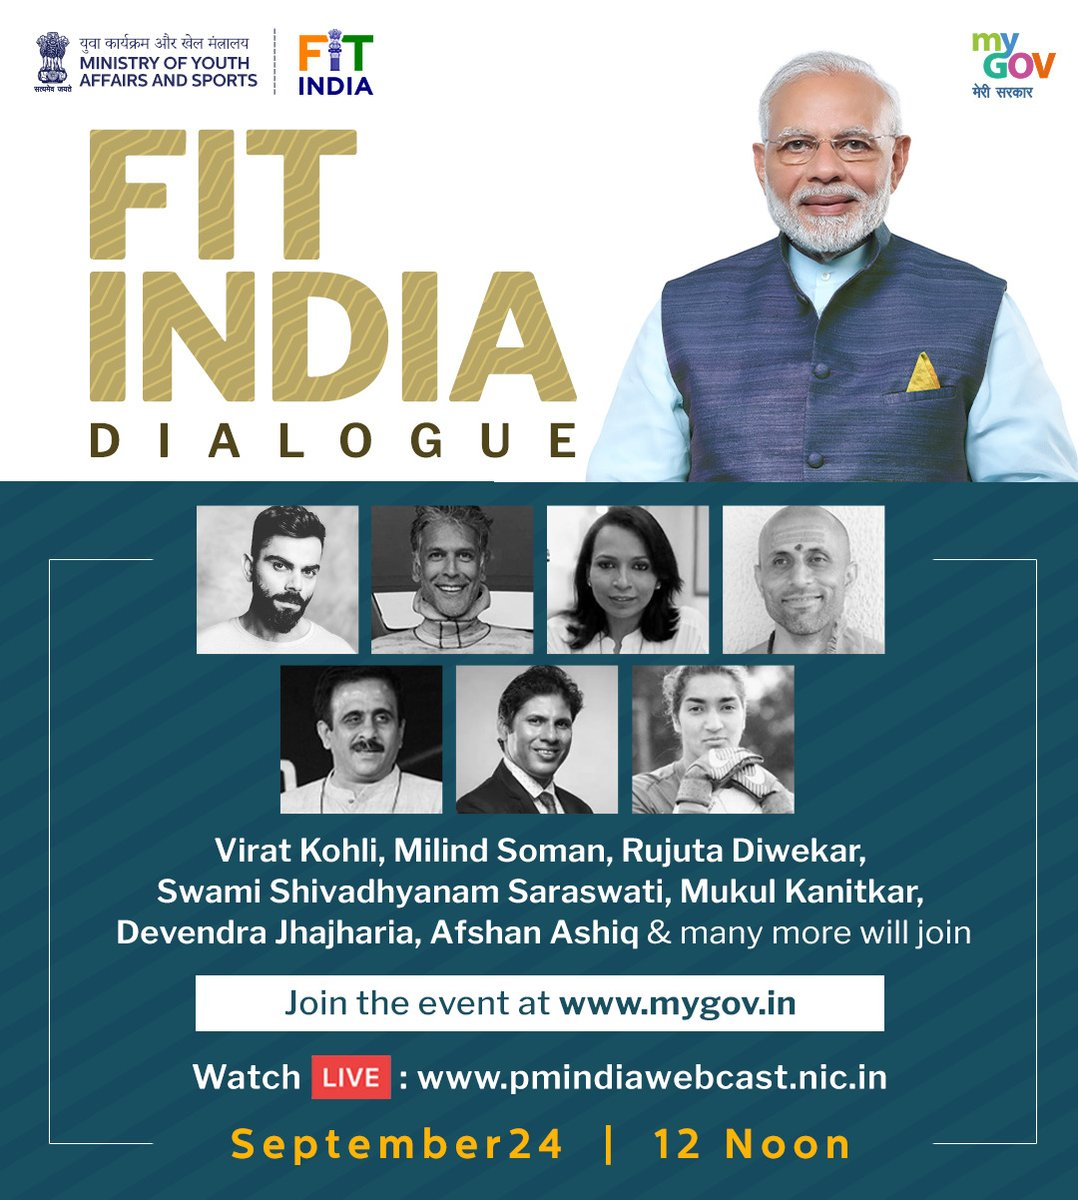 Narendra Modi,  Virat Kohli, Milind Soman, others to participate in Fit India Dialogue